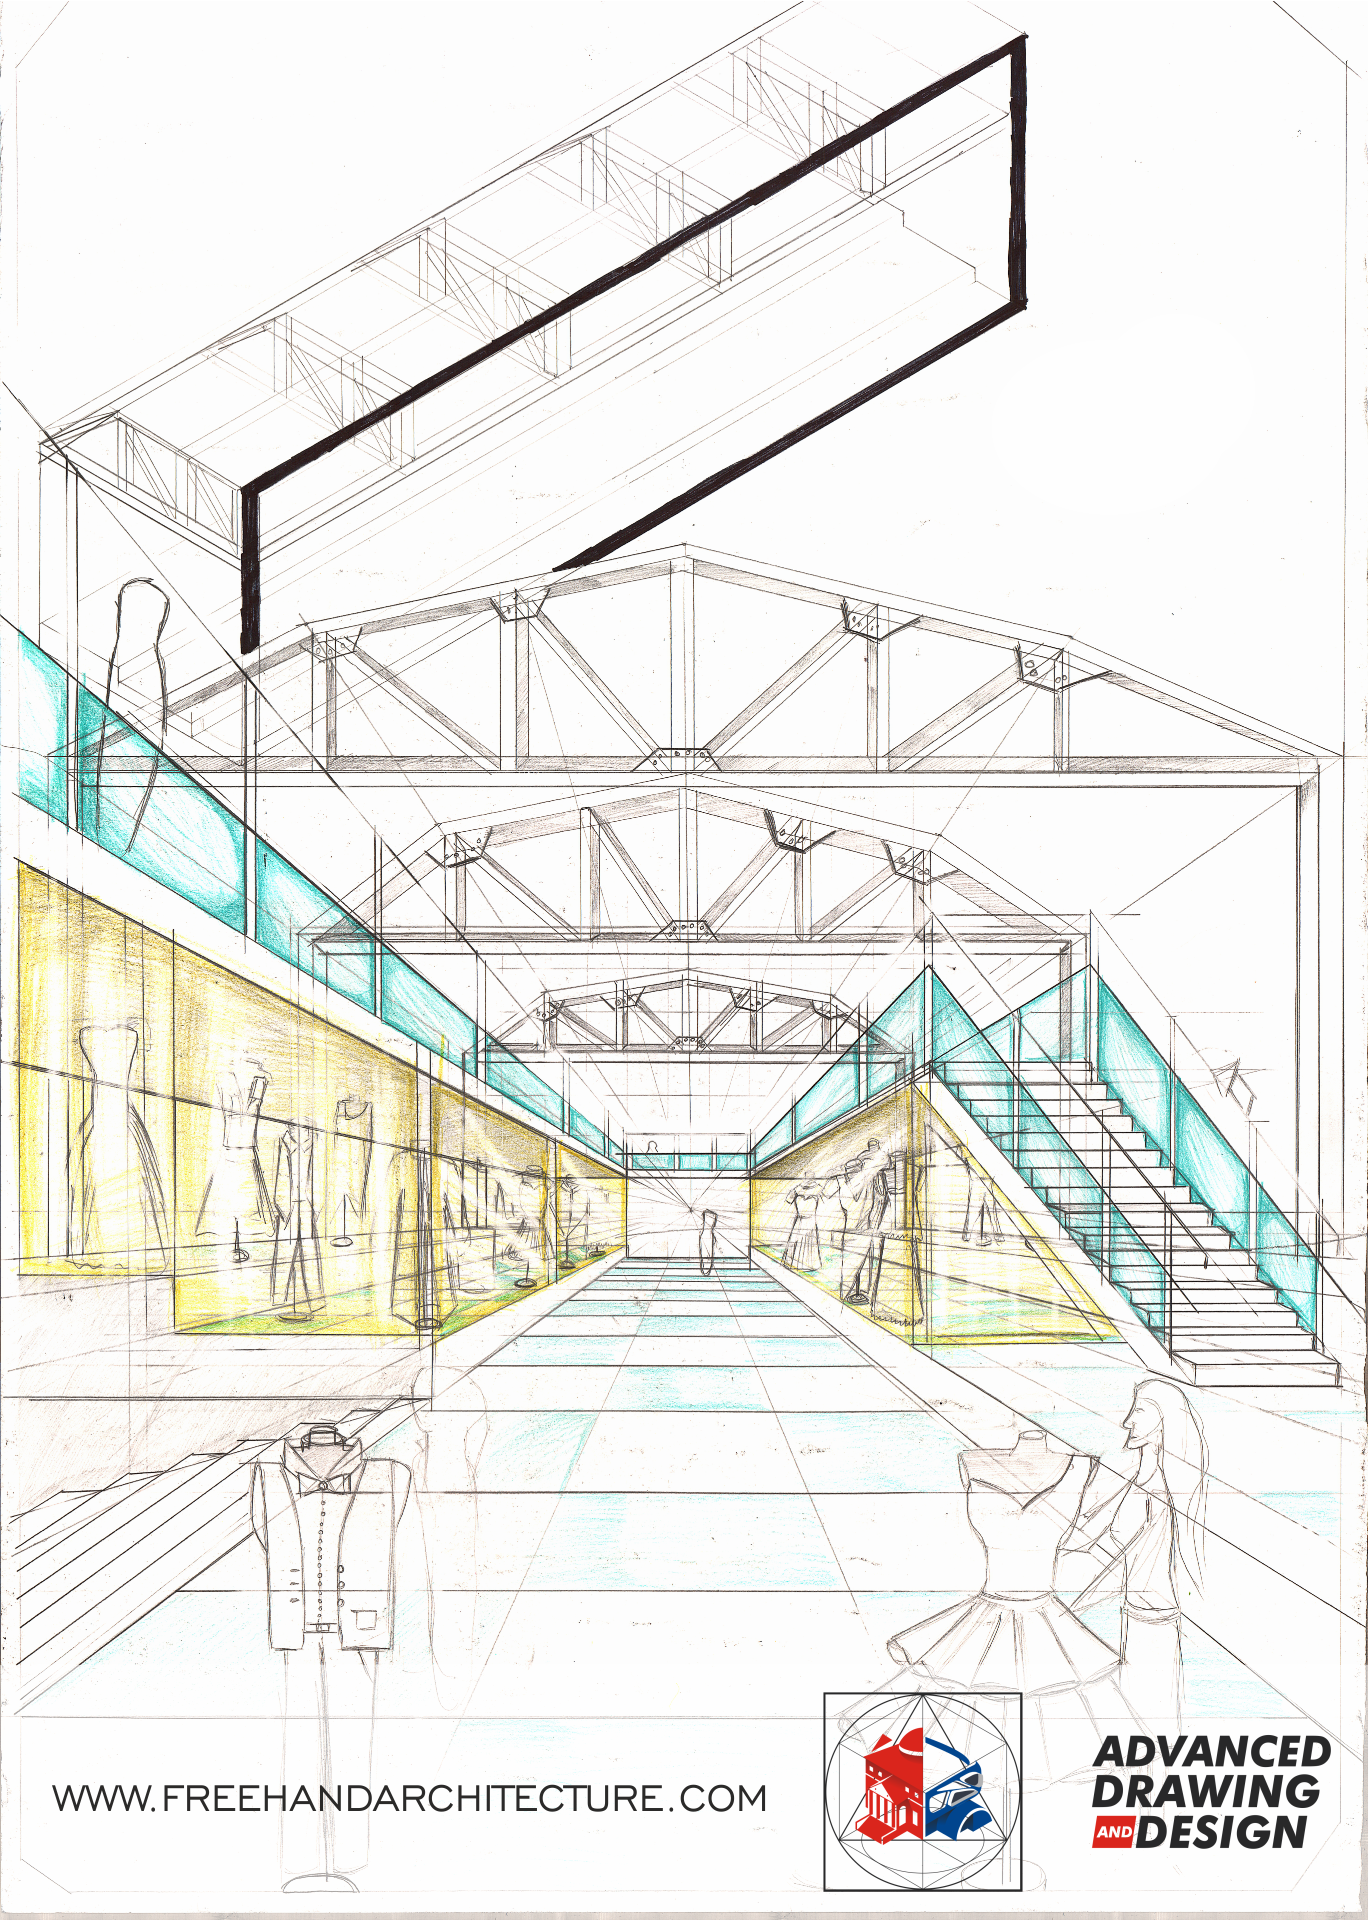 Pin By Freehandarchitecture On Beginner Drawings